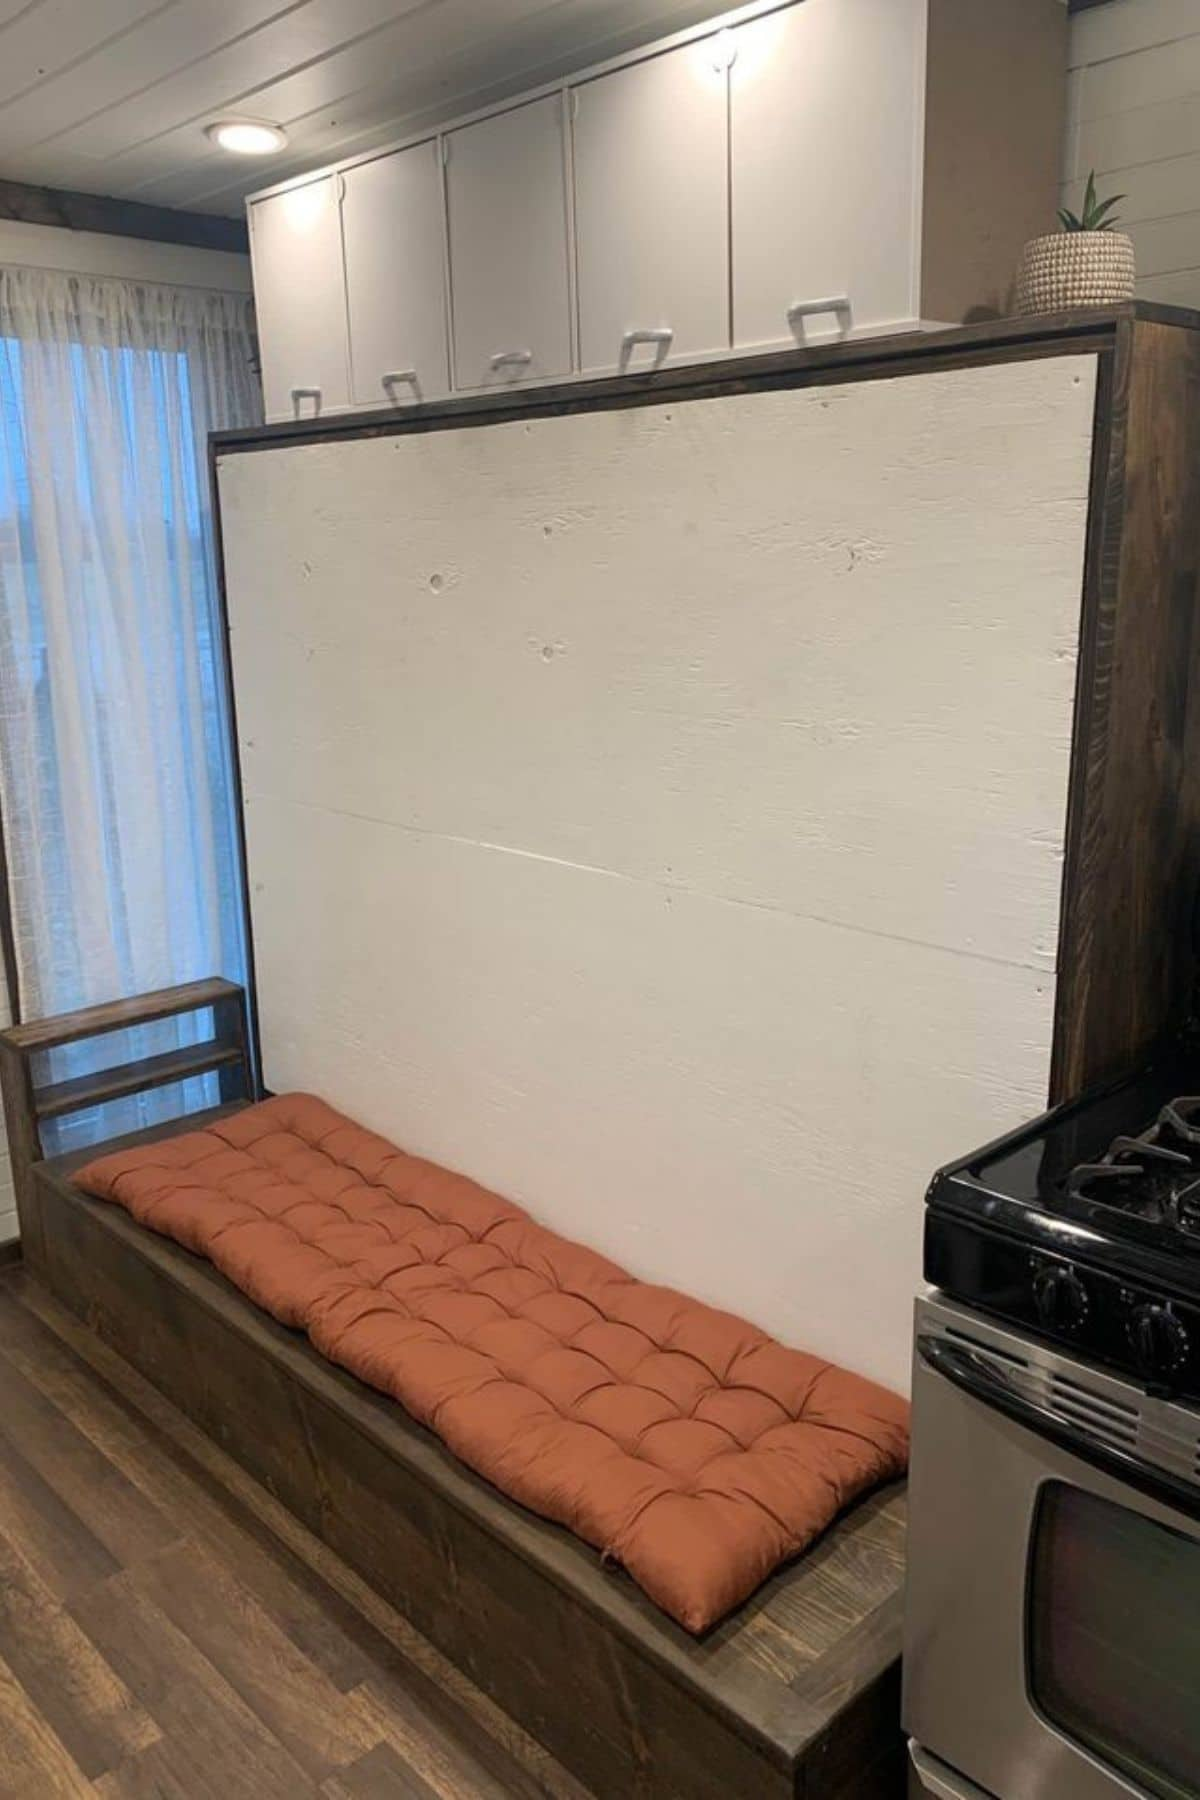 Murphy bed up in place against wall